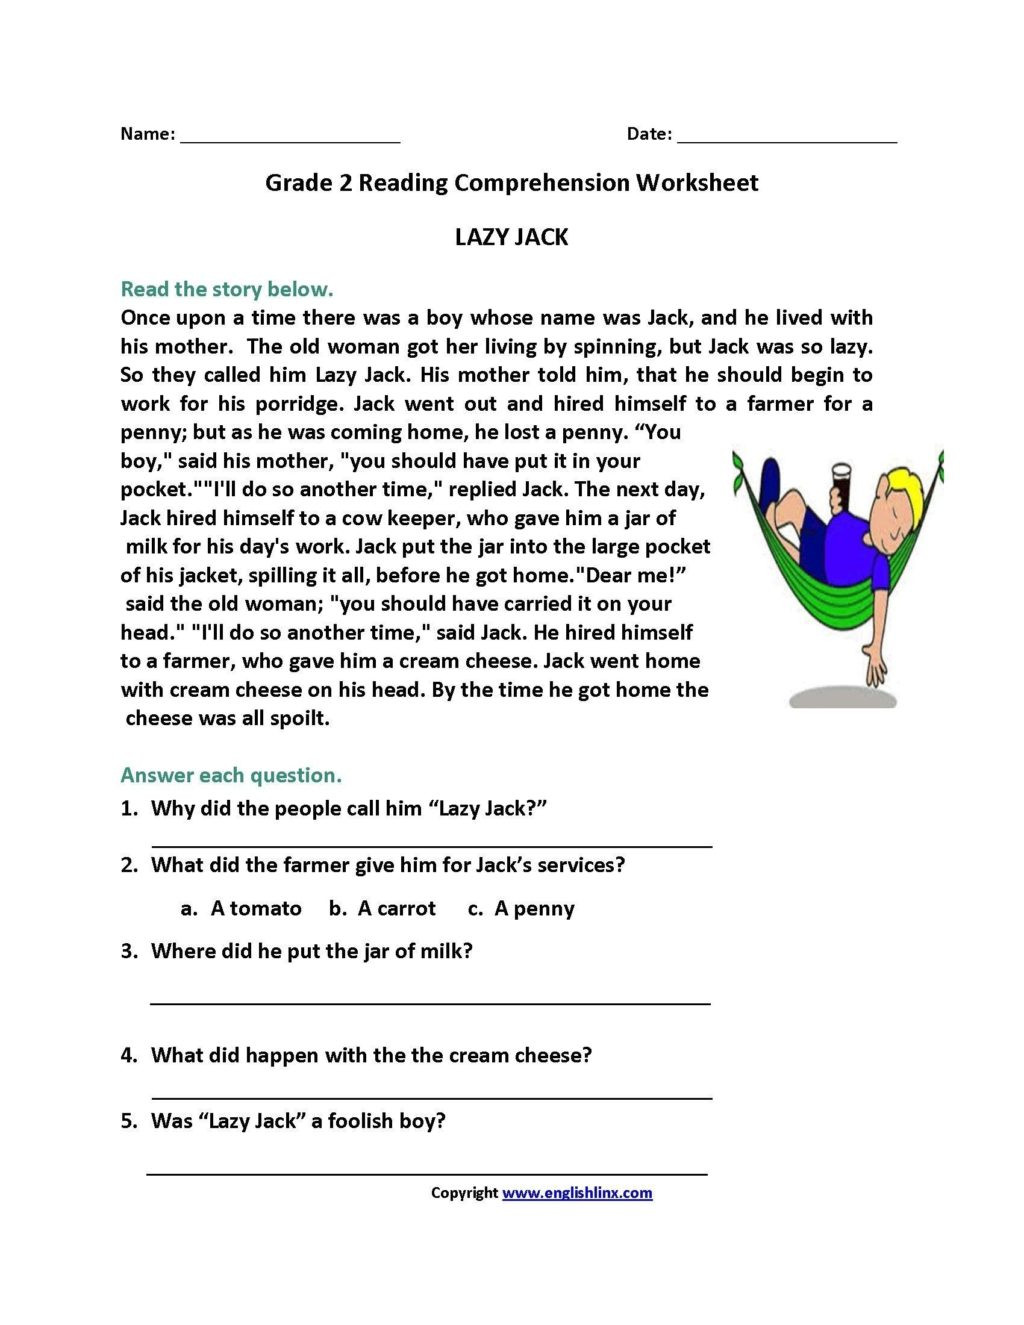 Grade 2 Reading Comprehension Worksheets Worksheet Reading Prehension Worksheets for 2ndade as